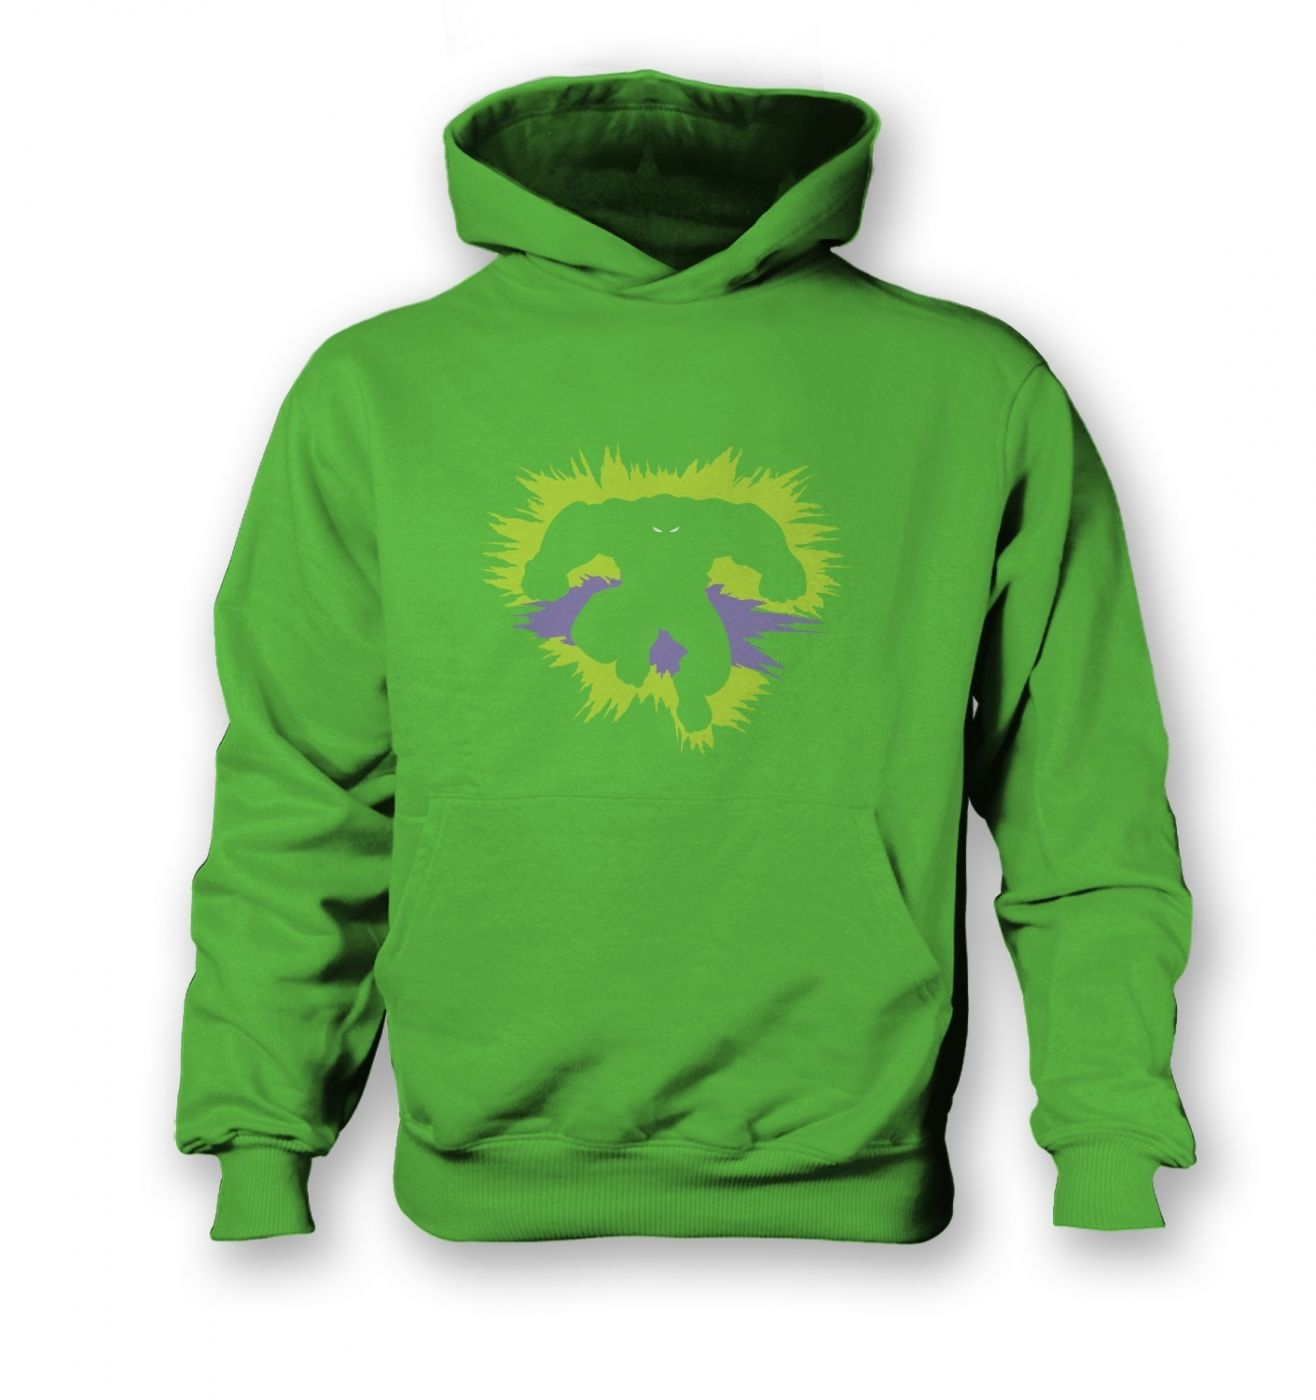 Mr Mean and Green Adult kids hoodie  Inspired by Hulk of The Avengers